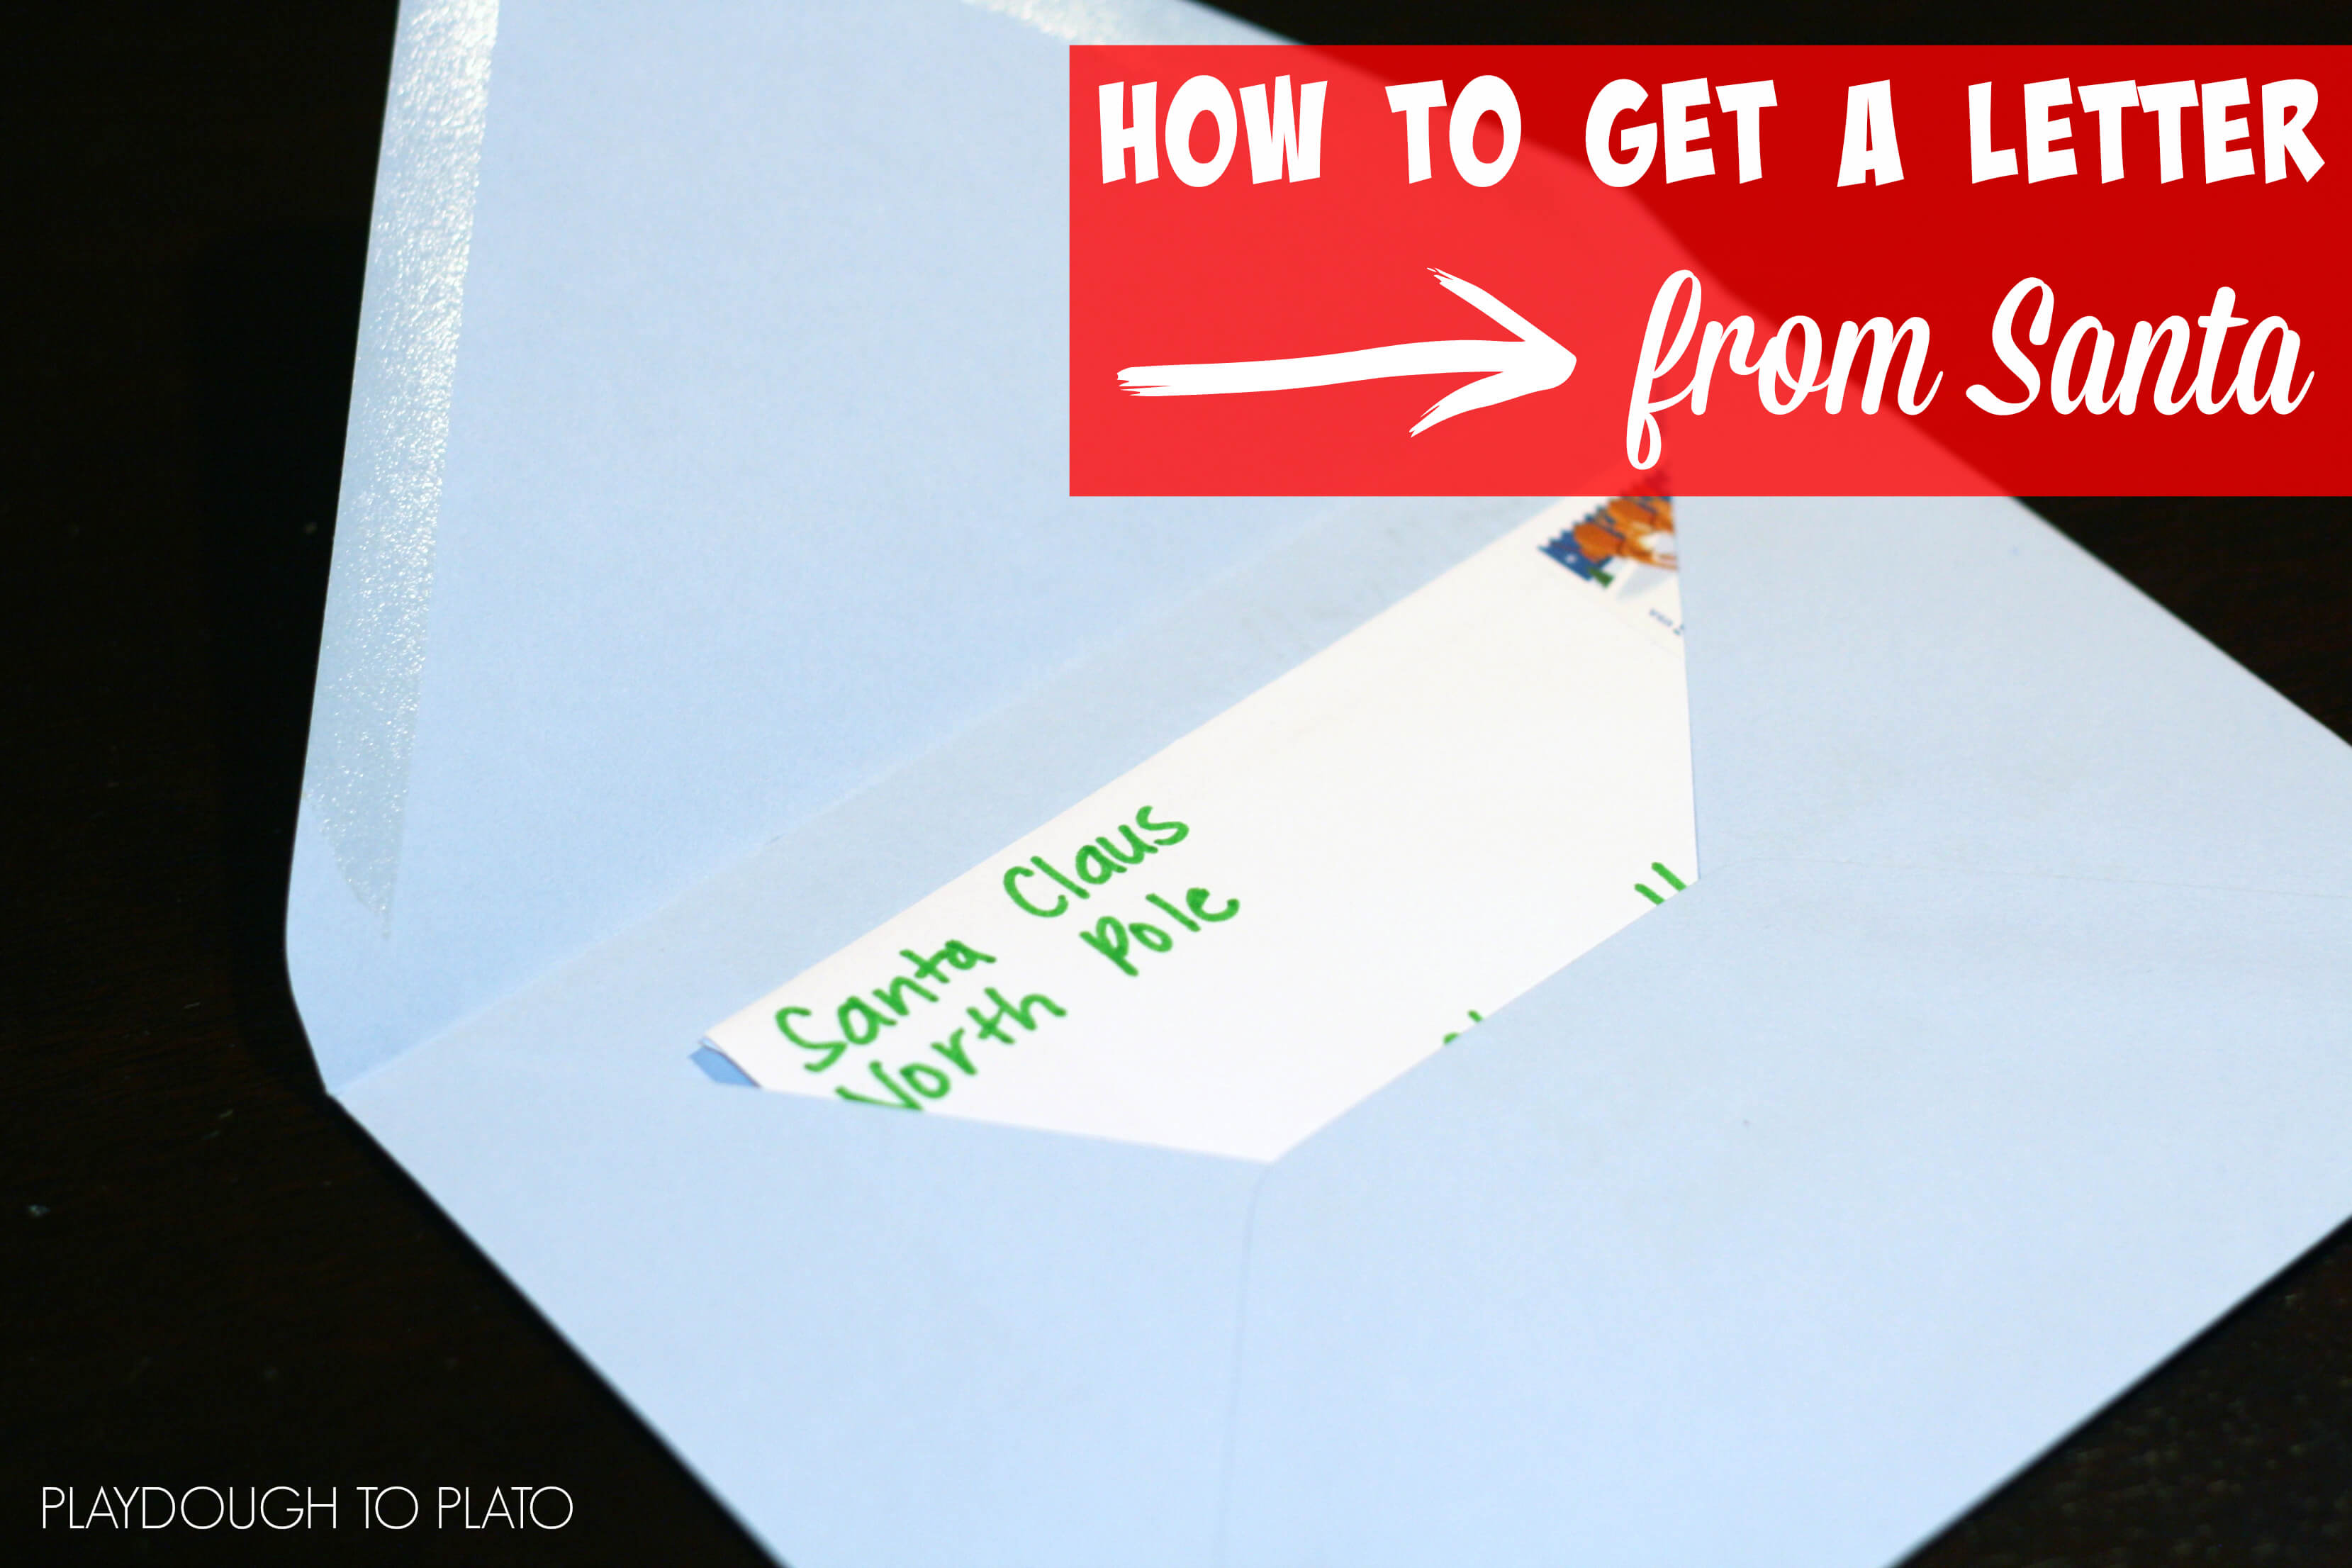 How to get a letter from santa in the mail playdough to plato how to get a letter from santa in the mail spiritdancerdesigns Images